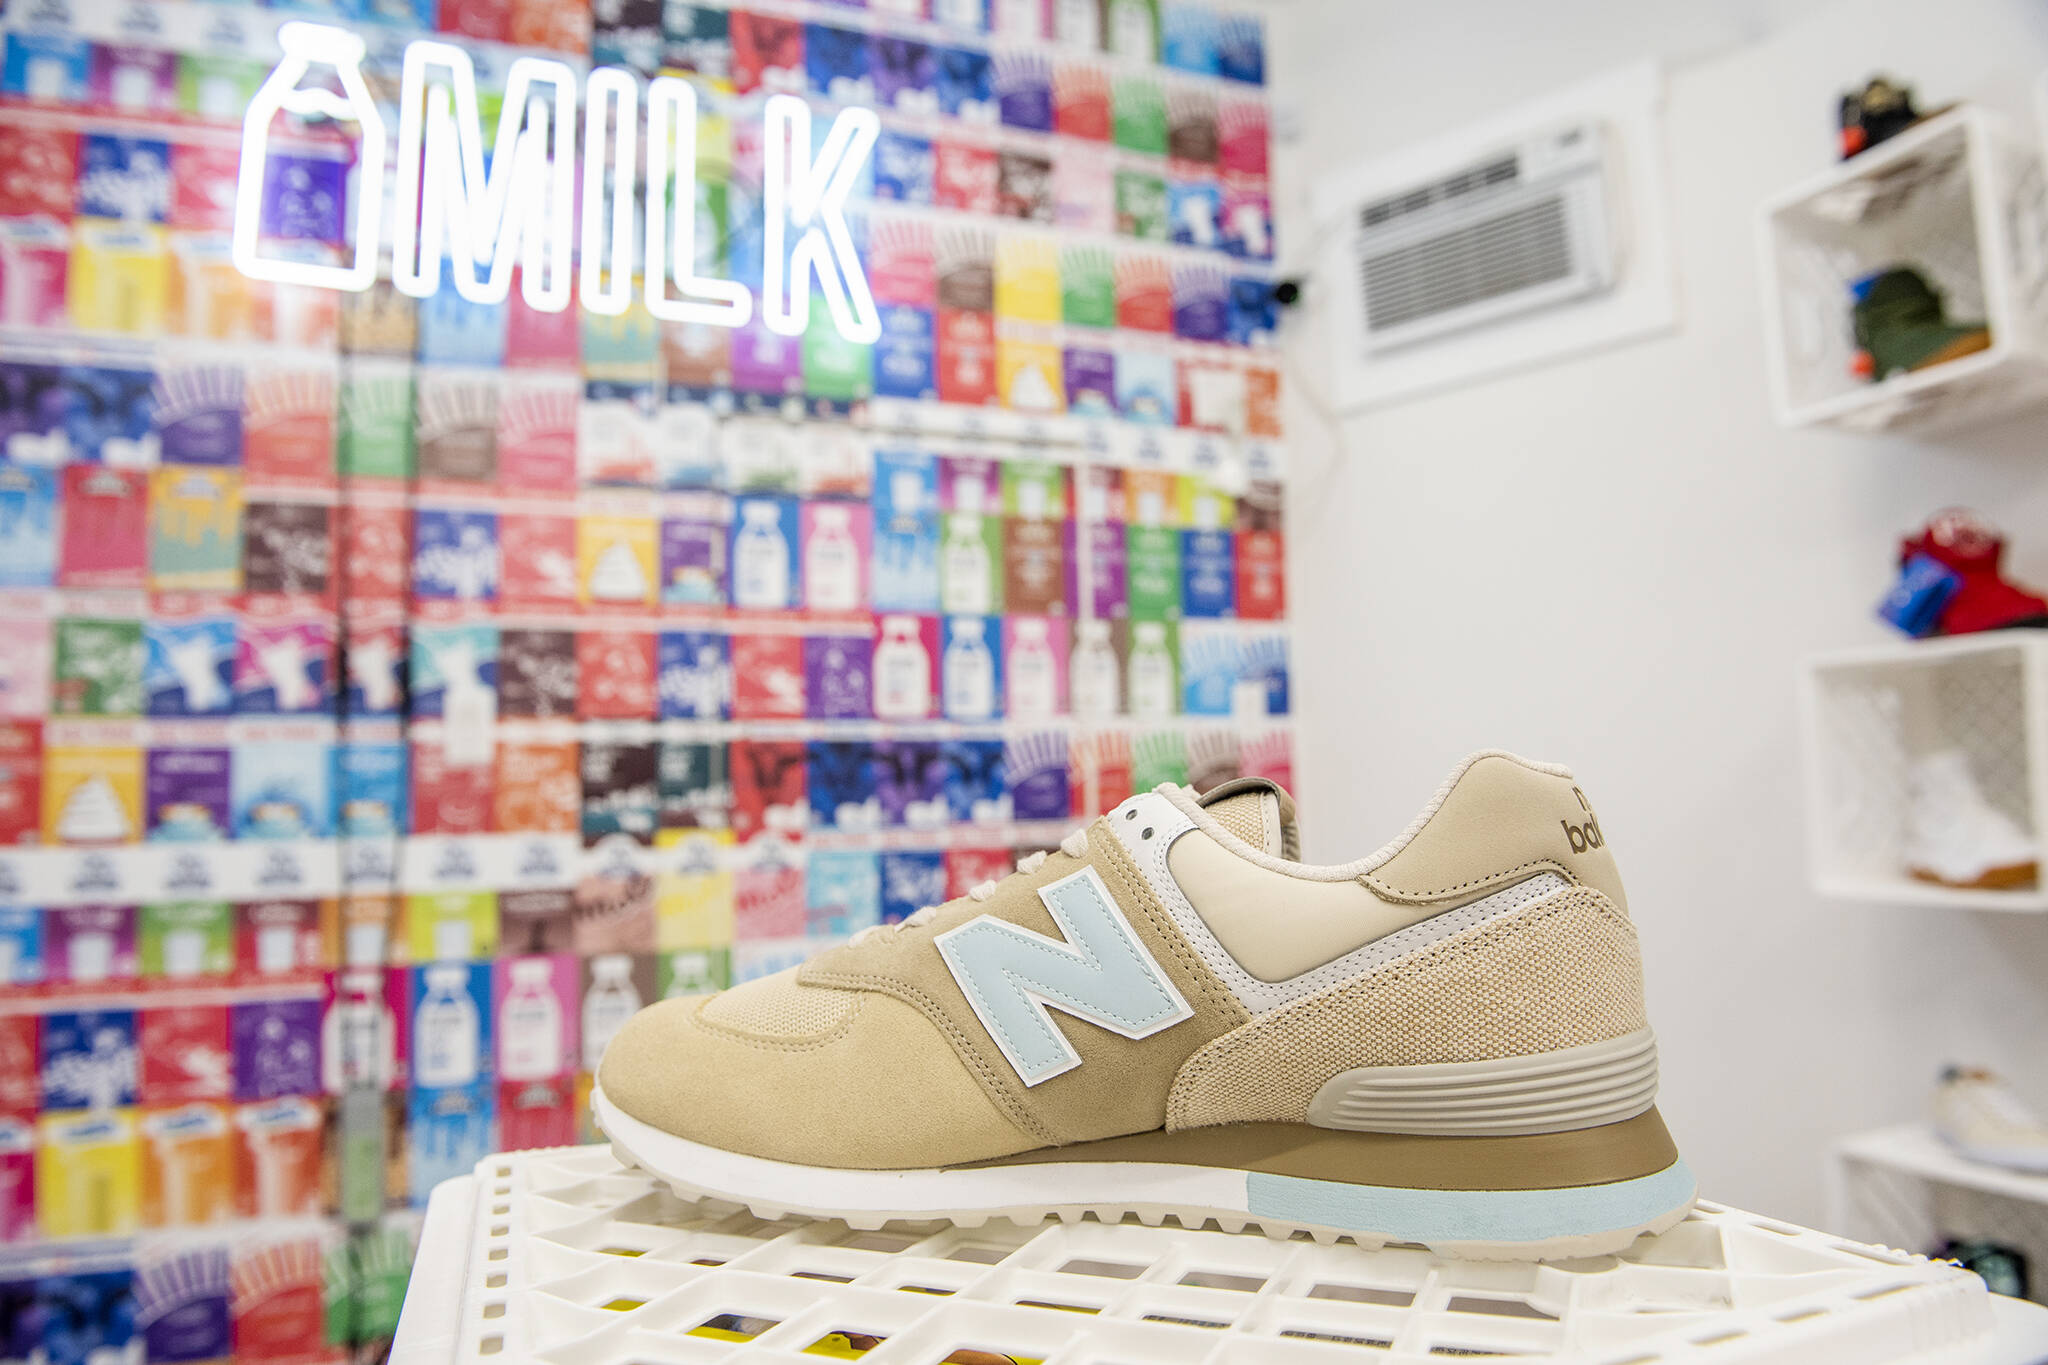 86a62b34ab6fd The Best Sneaker Shops in Toronto